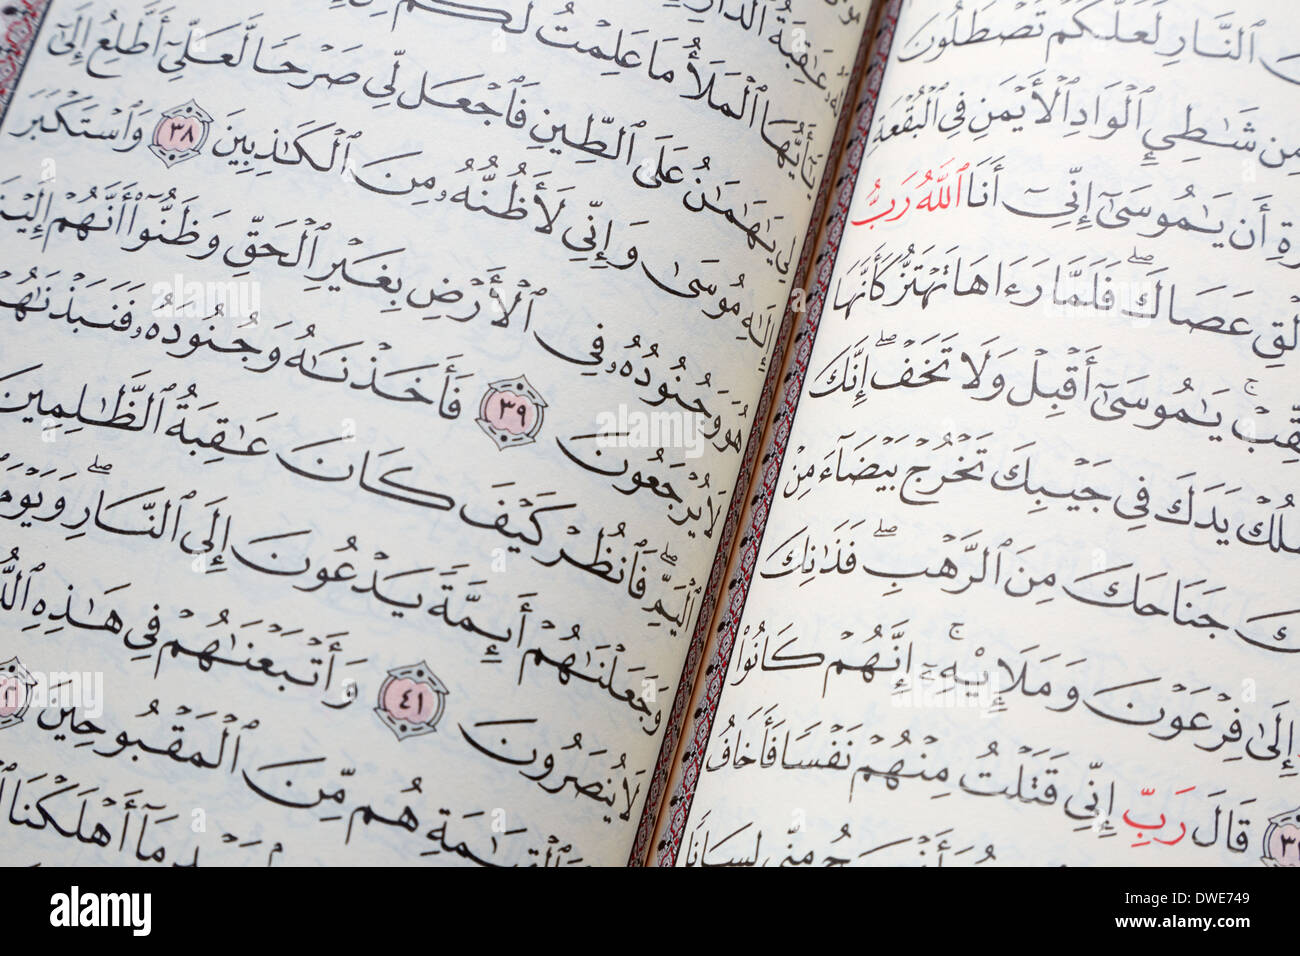 Koran, Muslims holy book pages background - Stock Image